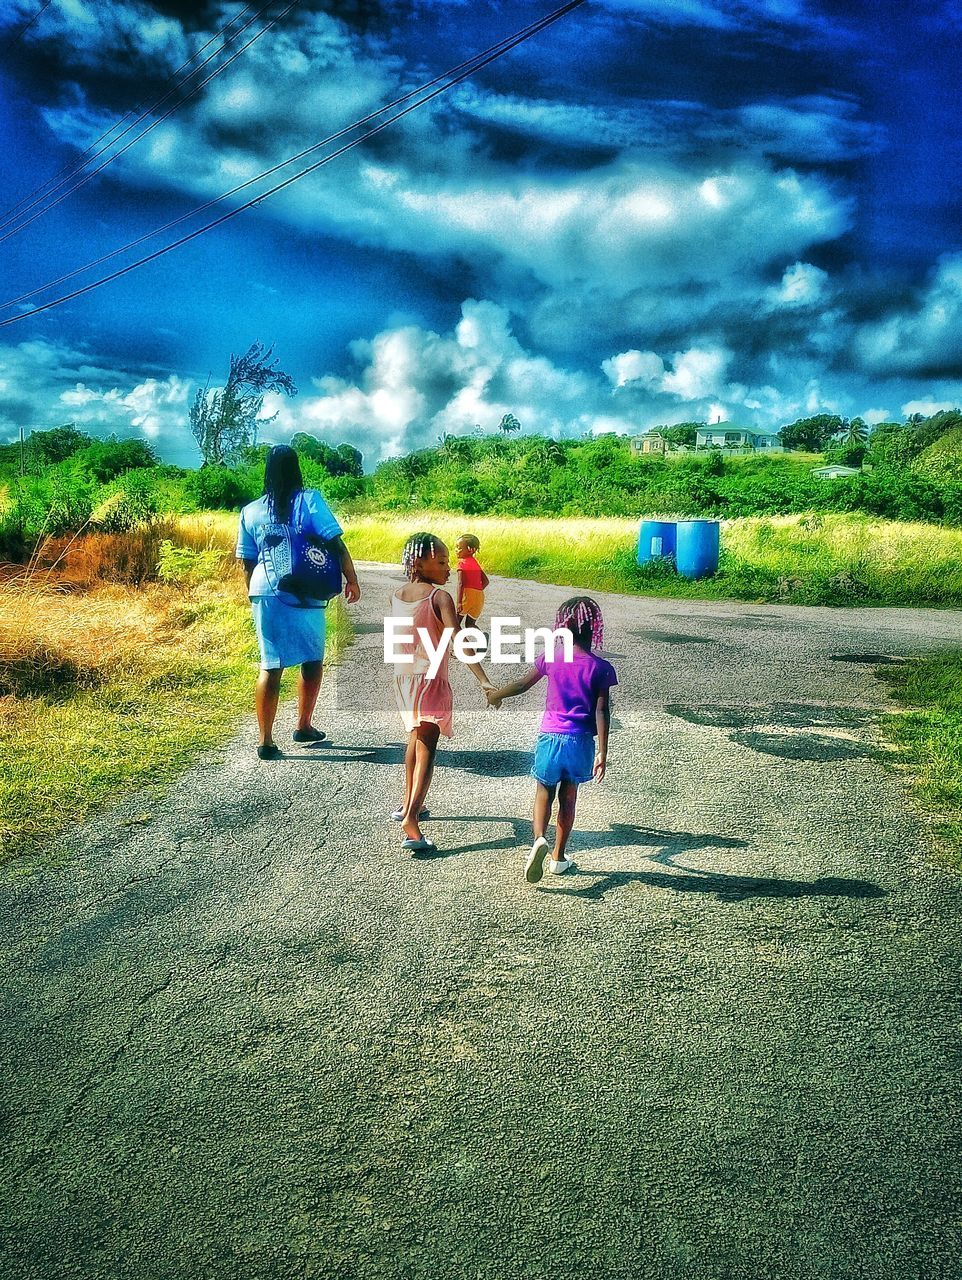 walking, girls, childhood, leisure activity, field, grass, full length, togetherness, real people, sky, boys, nature, day, rear view, casual clothing, running, lifestyles, outdoors, cloud - sky, bonding, growth, tree, landscape, men, women, child, rural scene, vacations, beauty in nature, friendship, adult, people